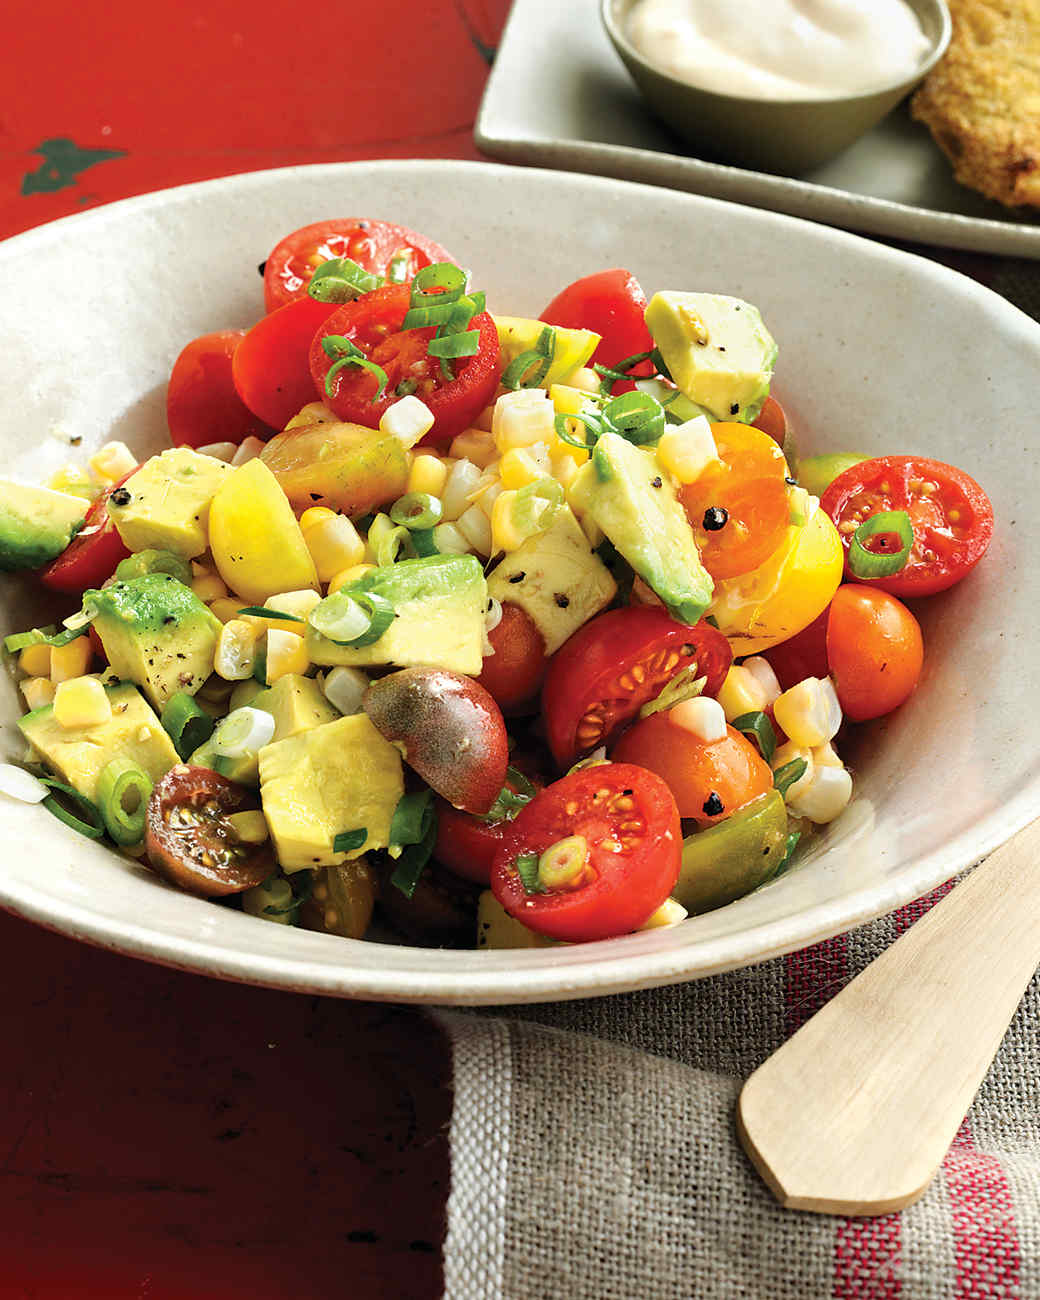 No-Cook Summer Recipes - Summer means long days filled with outdoor activities and impromptu weekend gatherings. So when the temperature rises, keep the cooking time to a minimum and the kitchen cool with our favorite no-cook summer recipes. | www.hungerchef.xyz #nocook #summer #summerrecipe #summerfood #salad #sandwiches #soup